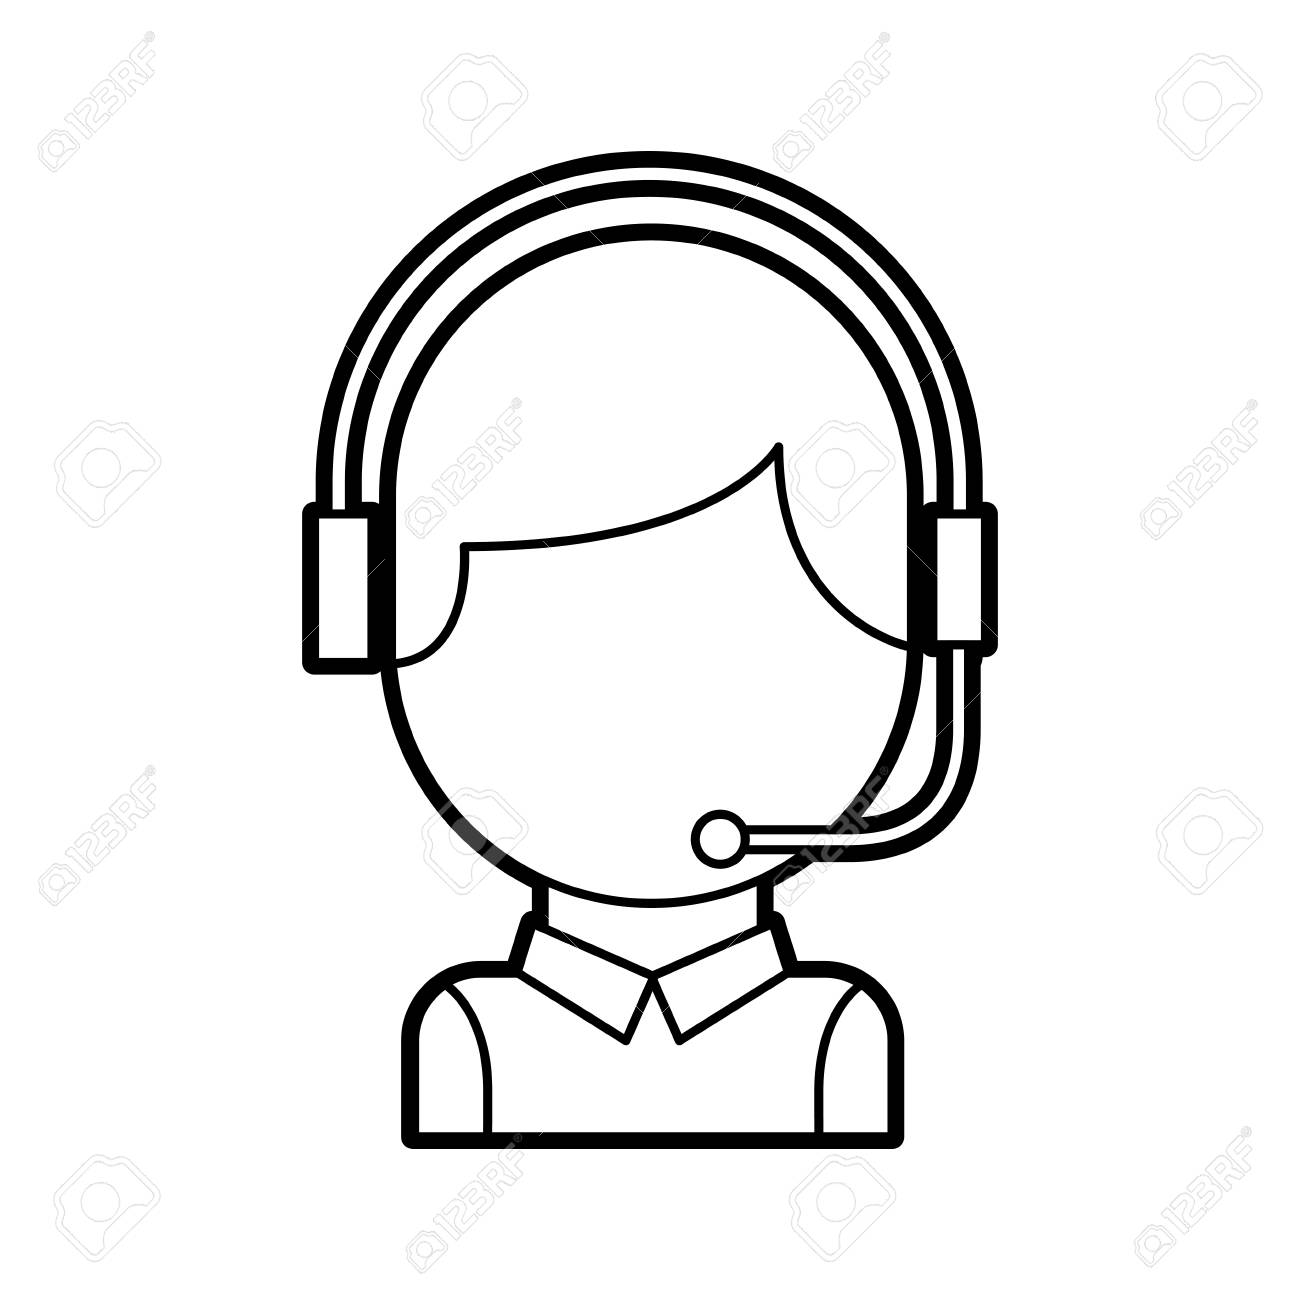 Call Center Operator With Phone Headset Vector Illustration Royalty Free Cliparts Vectors And Stock Illustration Image 86641895